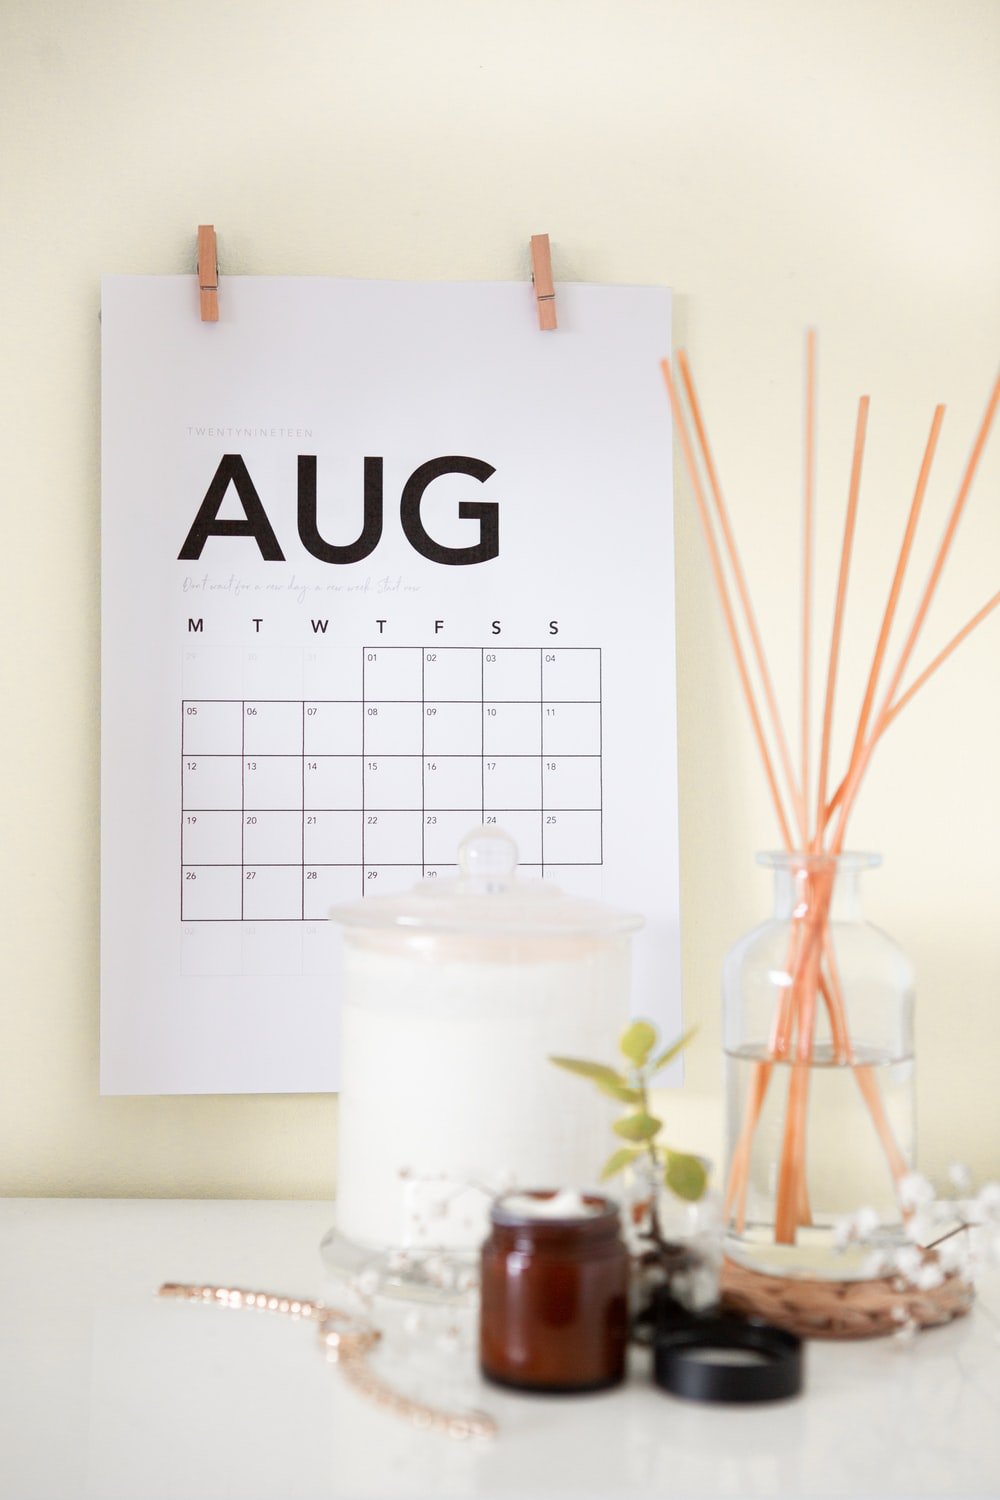 Aug calendar on wall